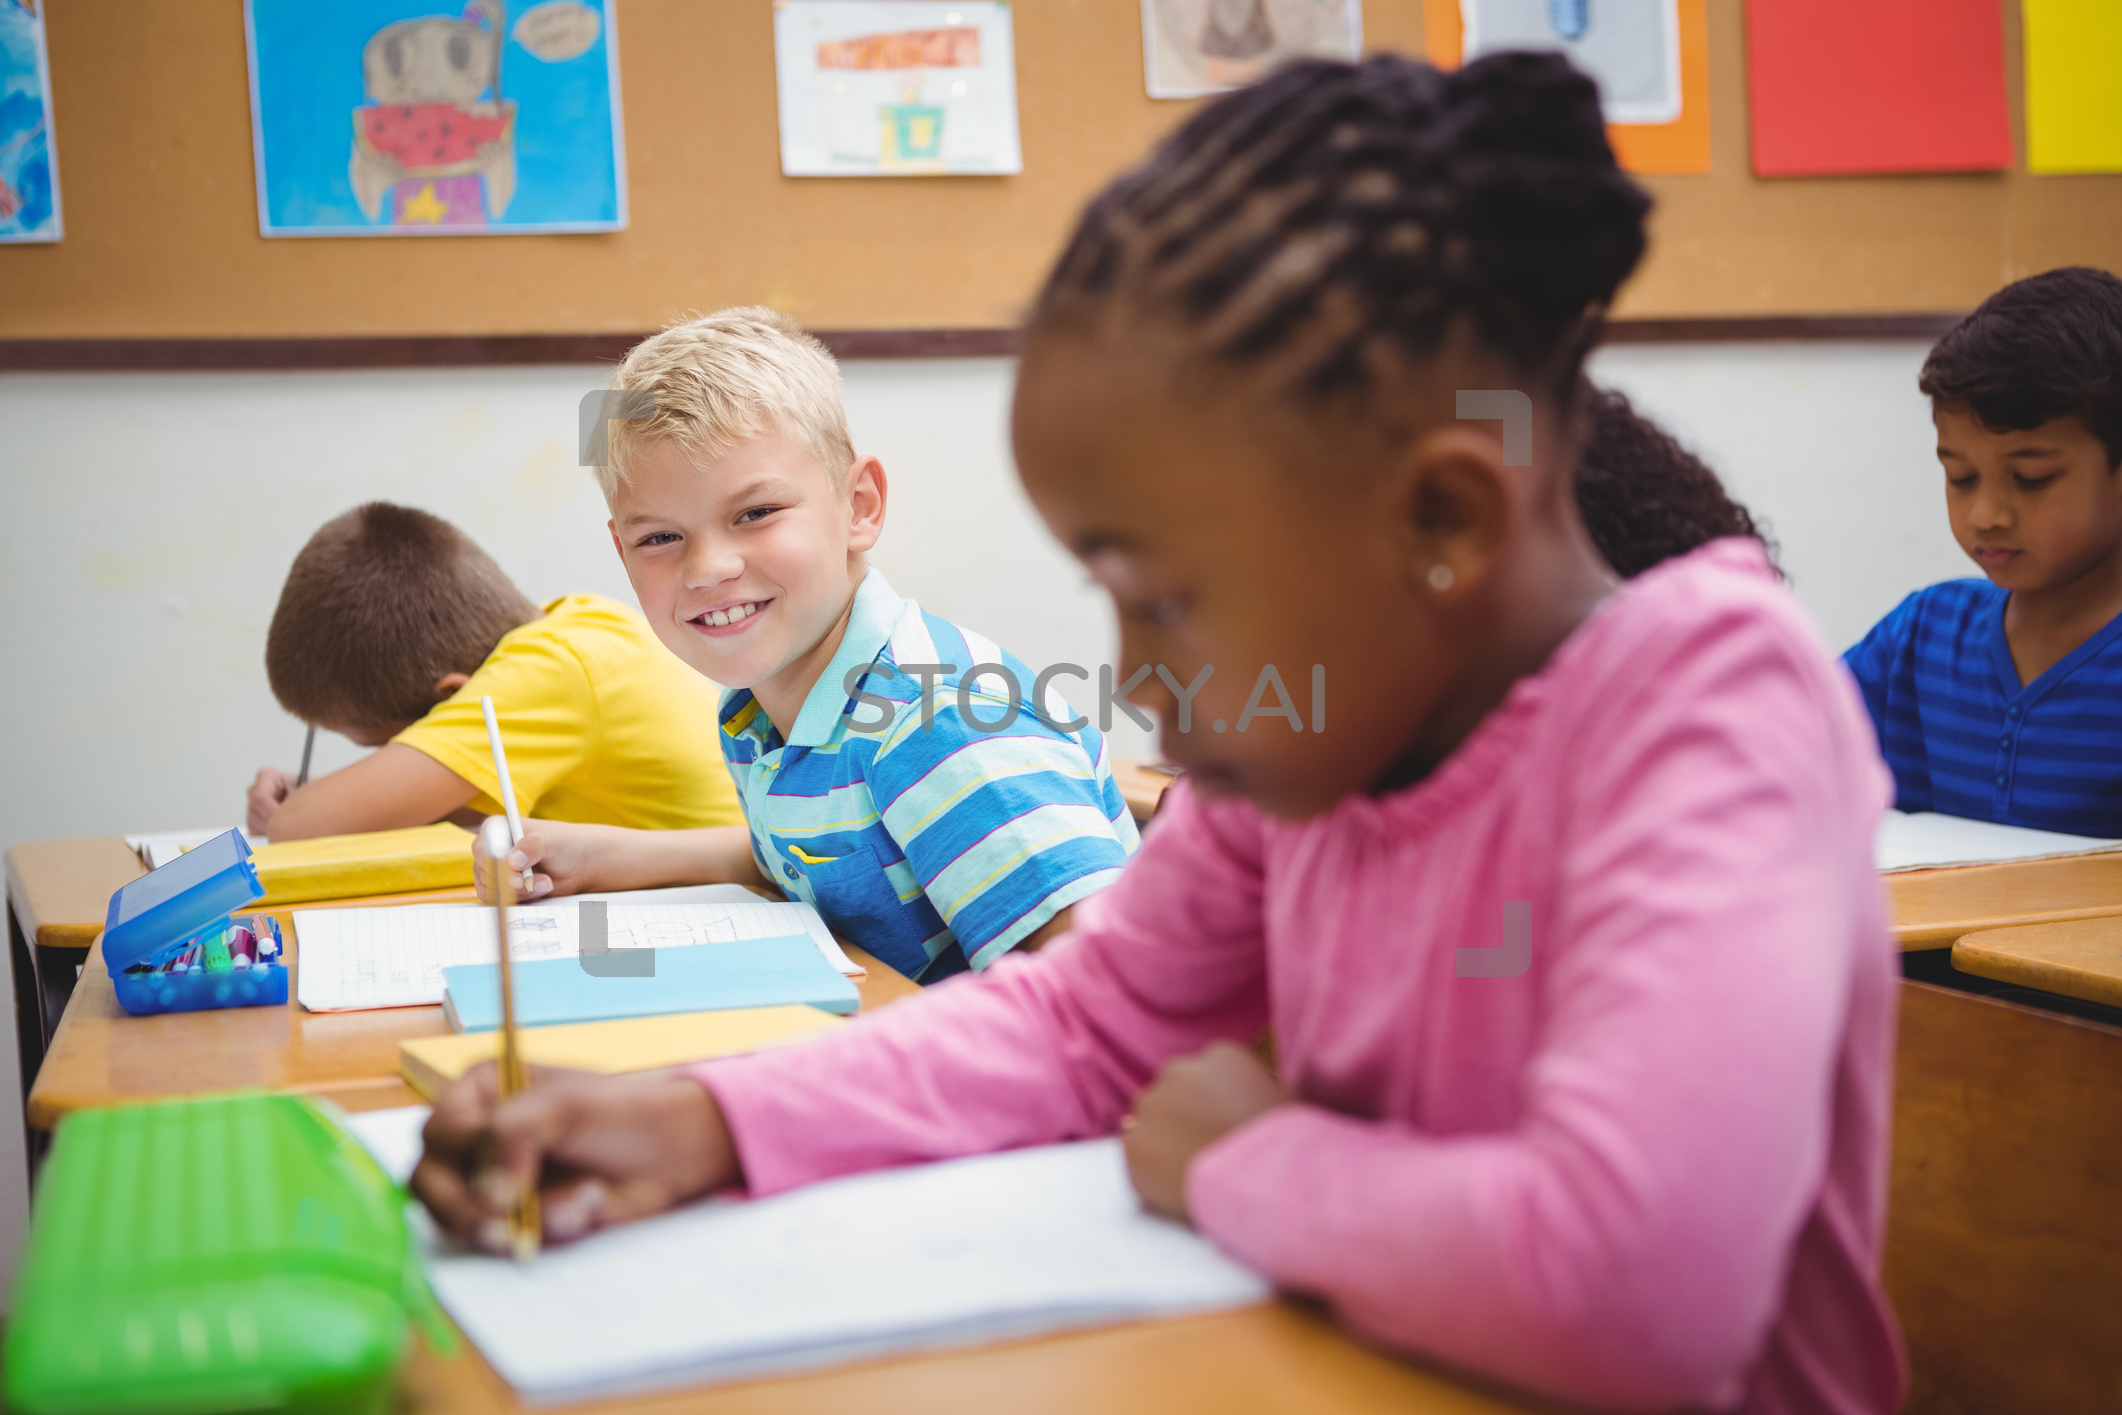 Image Of Busy Students Working On Class Work